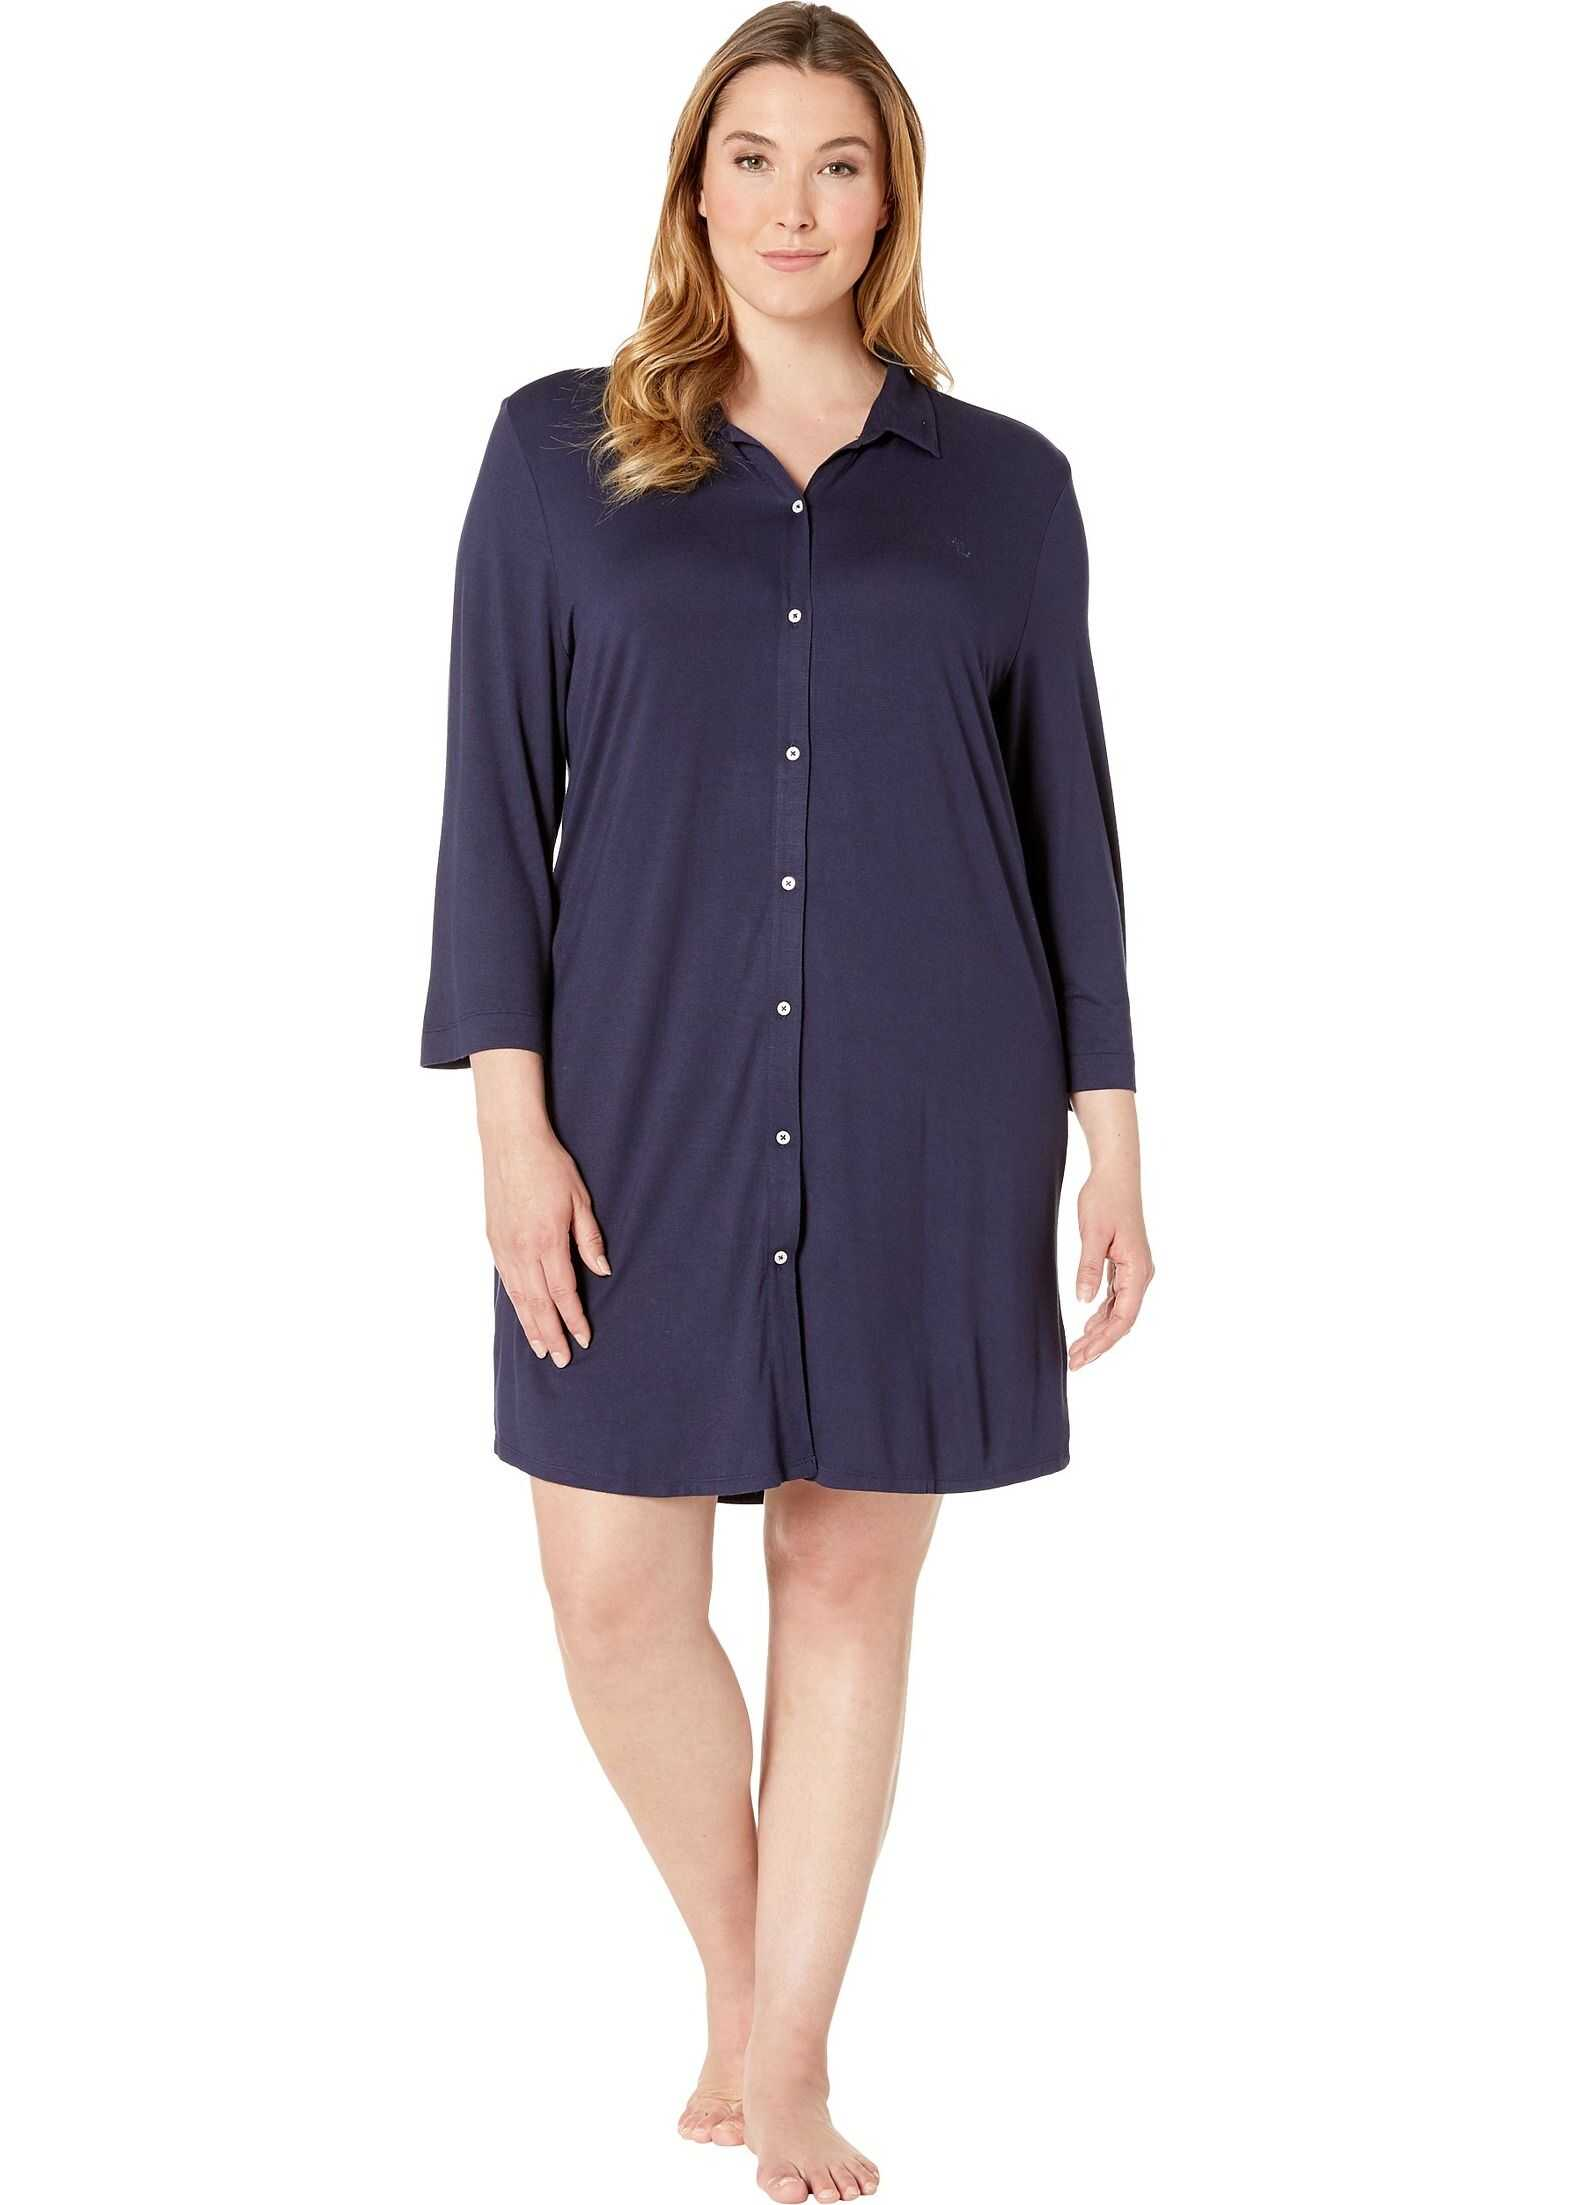 Ralph Lauren Plus Size 3/4 Sleeve Short Sleepshirt Navy